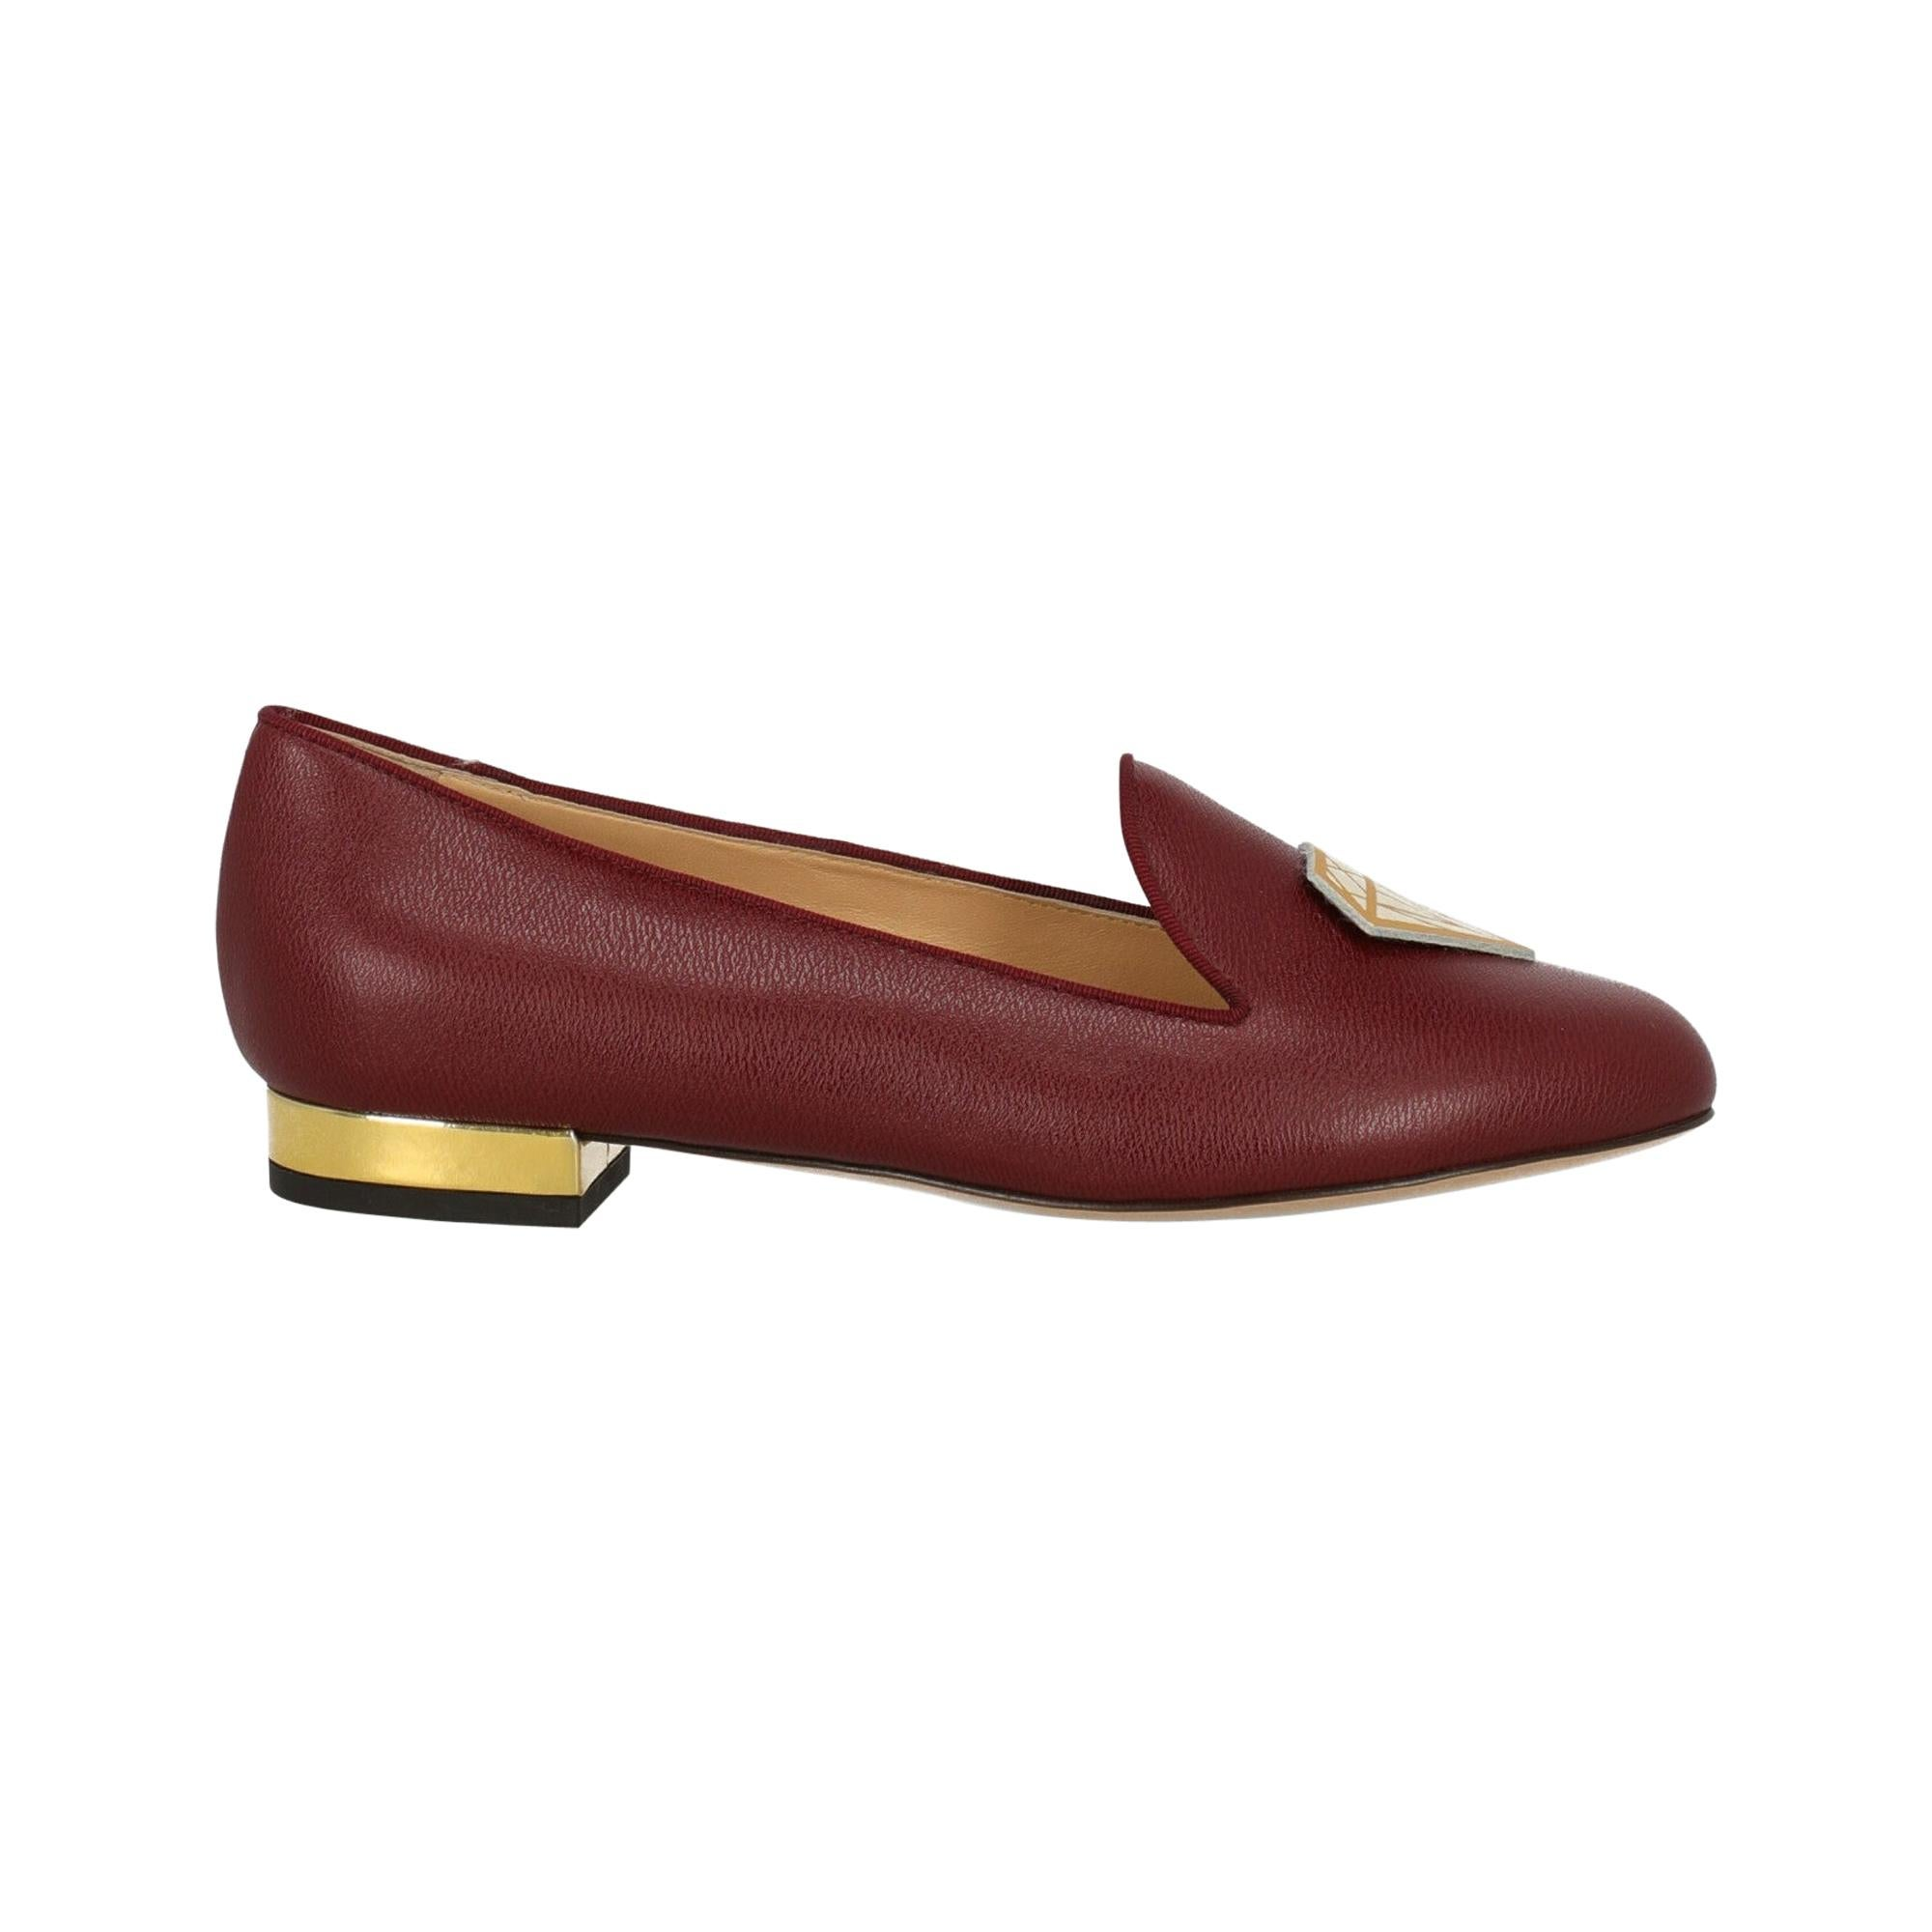 Charlotte Olympia Woman Ballet flats Burgundy Leather IT 36